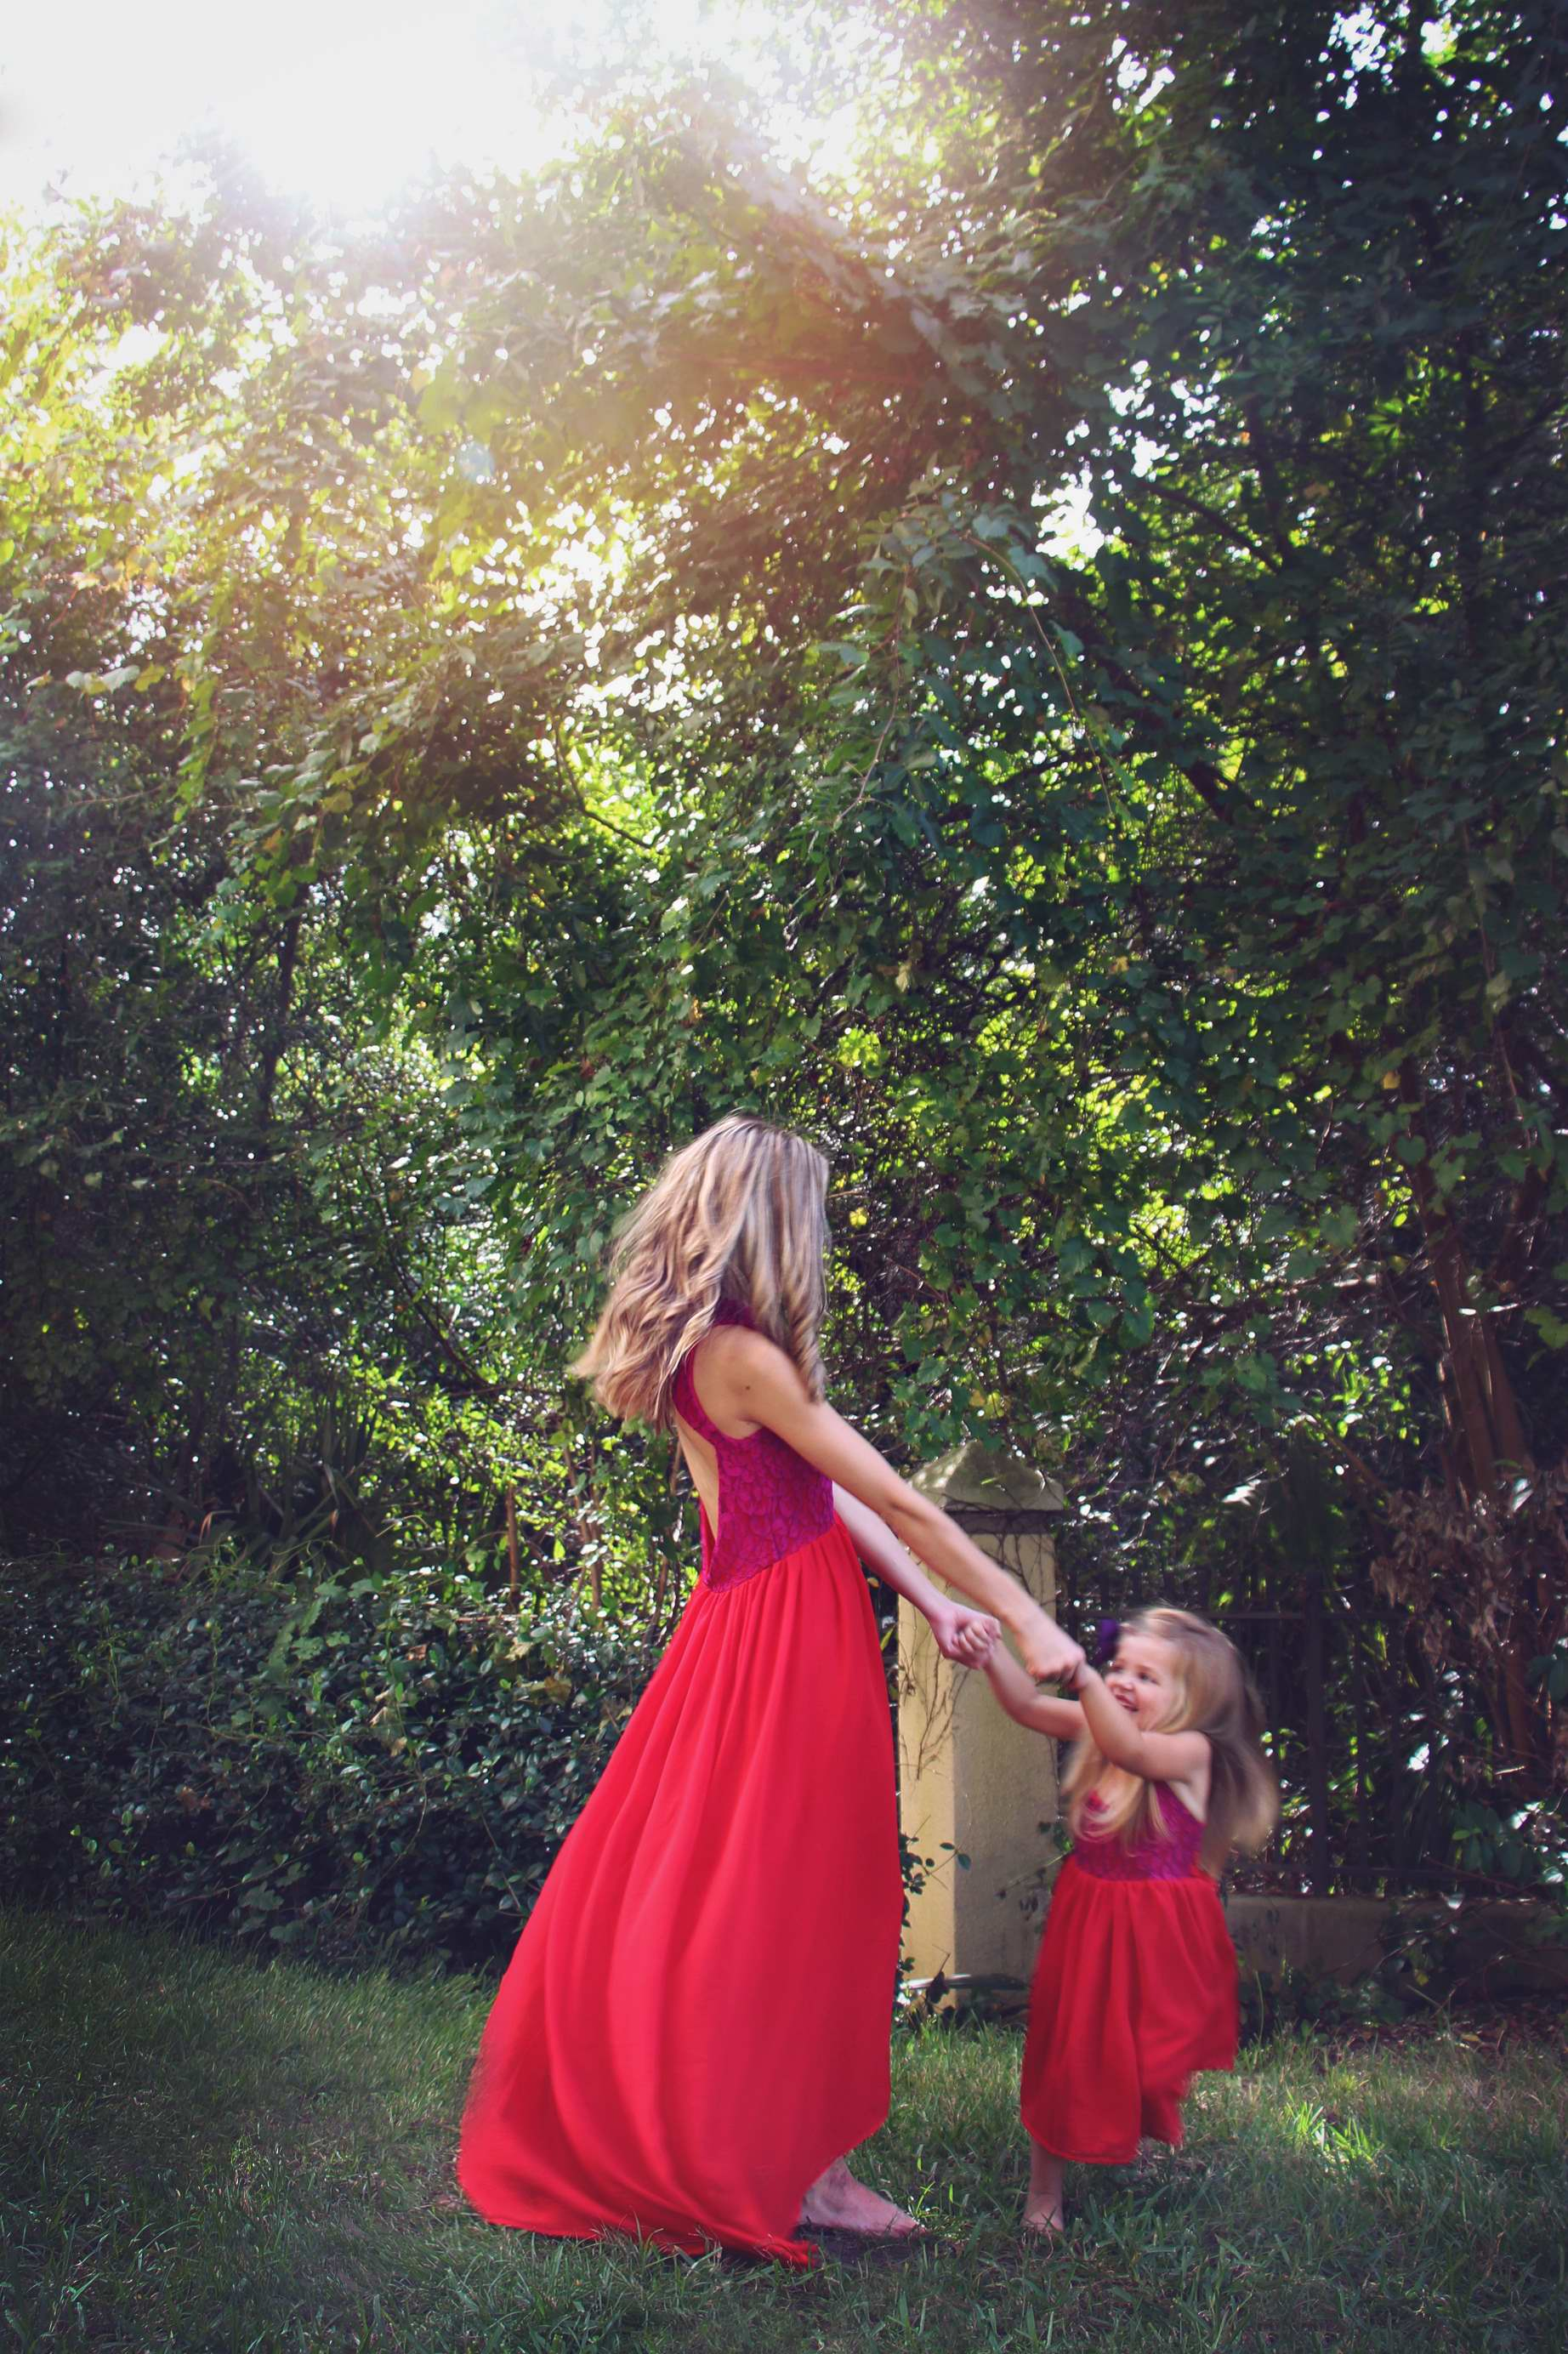 – 20 a mommy and me mom daughter matching katherine eastman photography miami photographer orlando ohio atlanta portrait fairytale